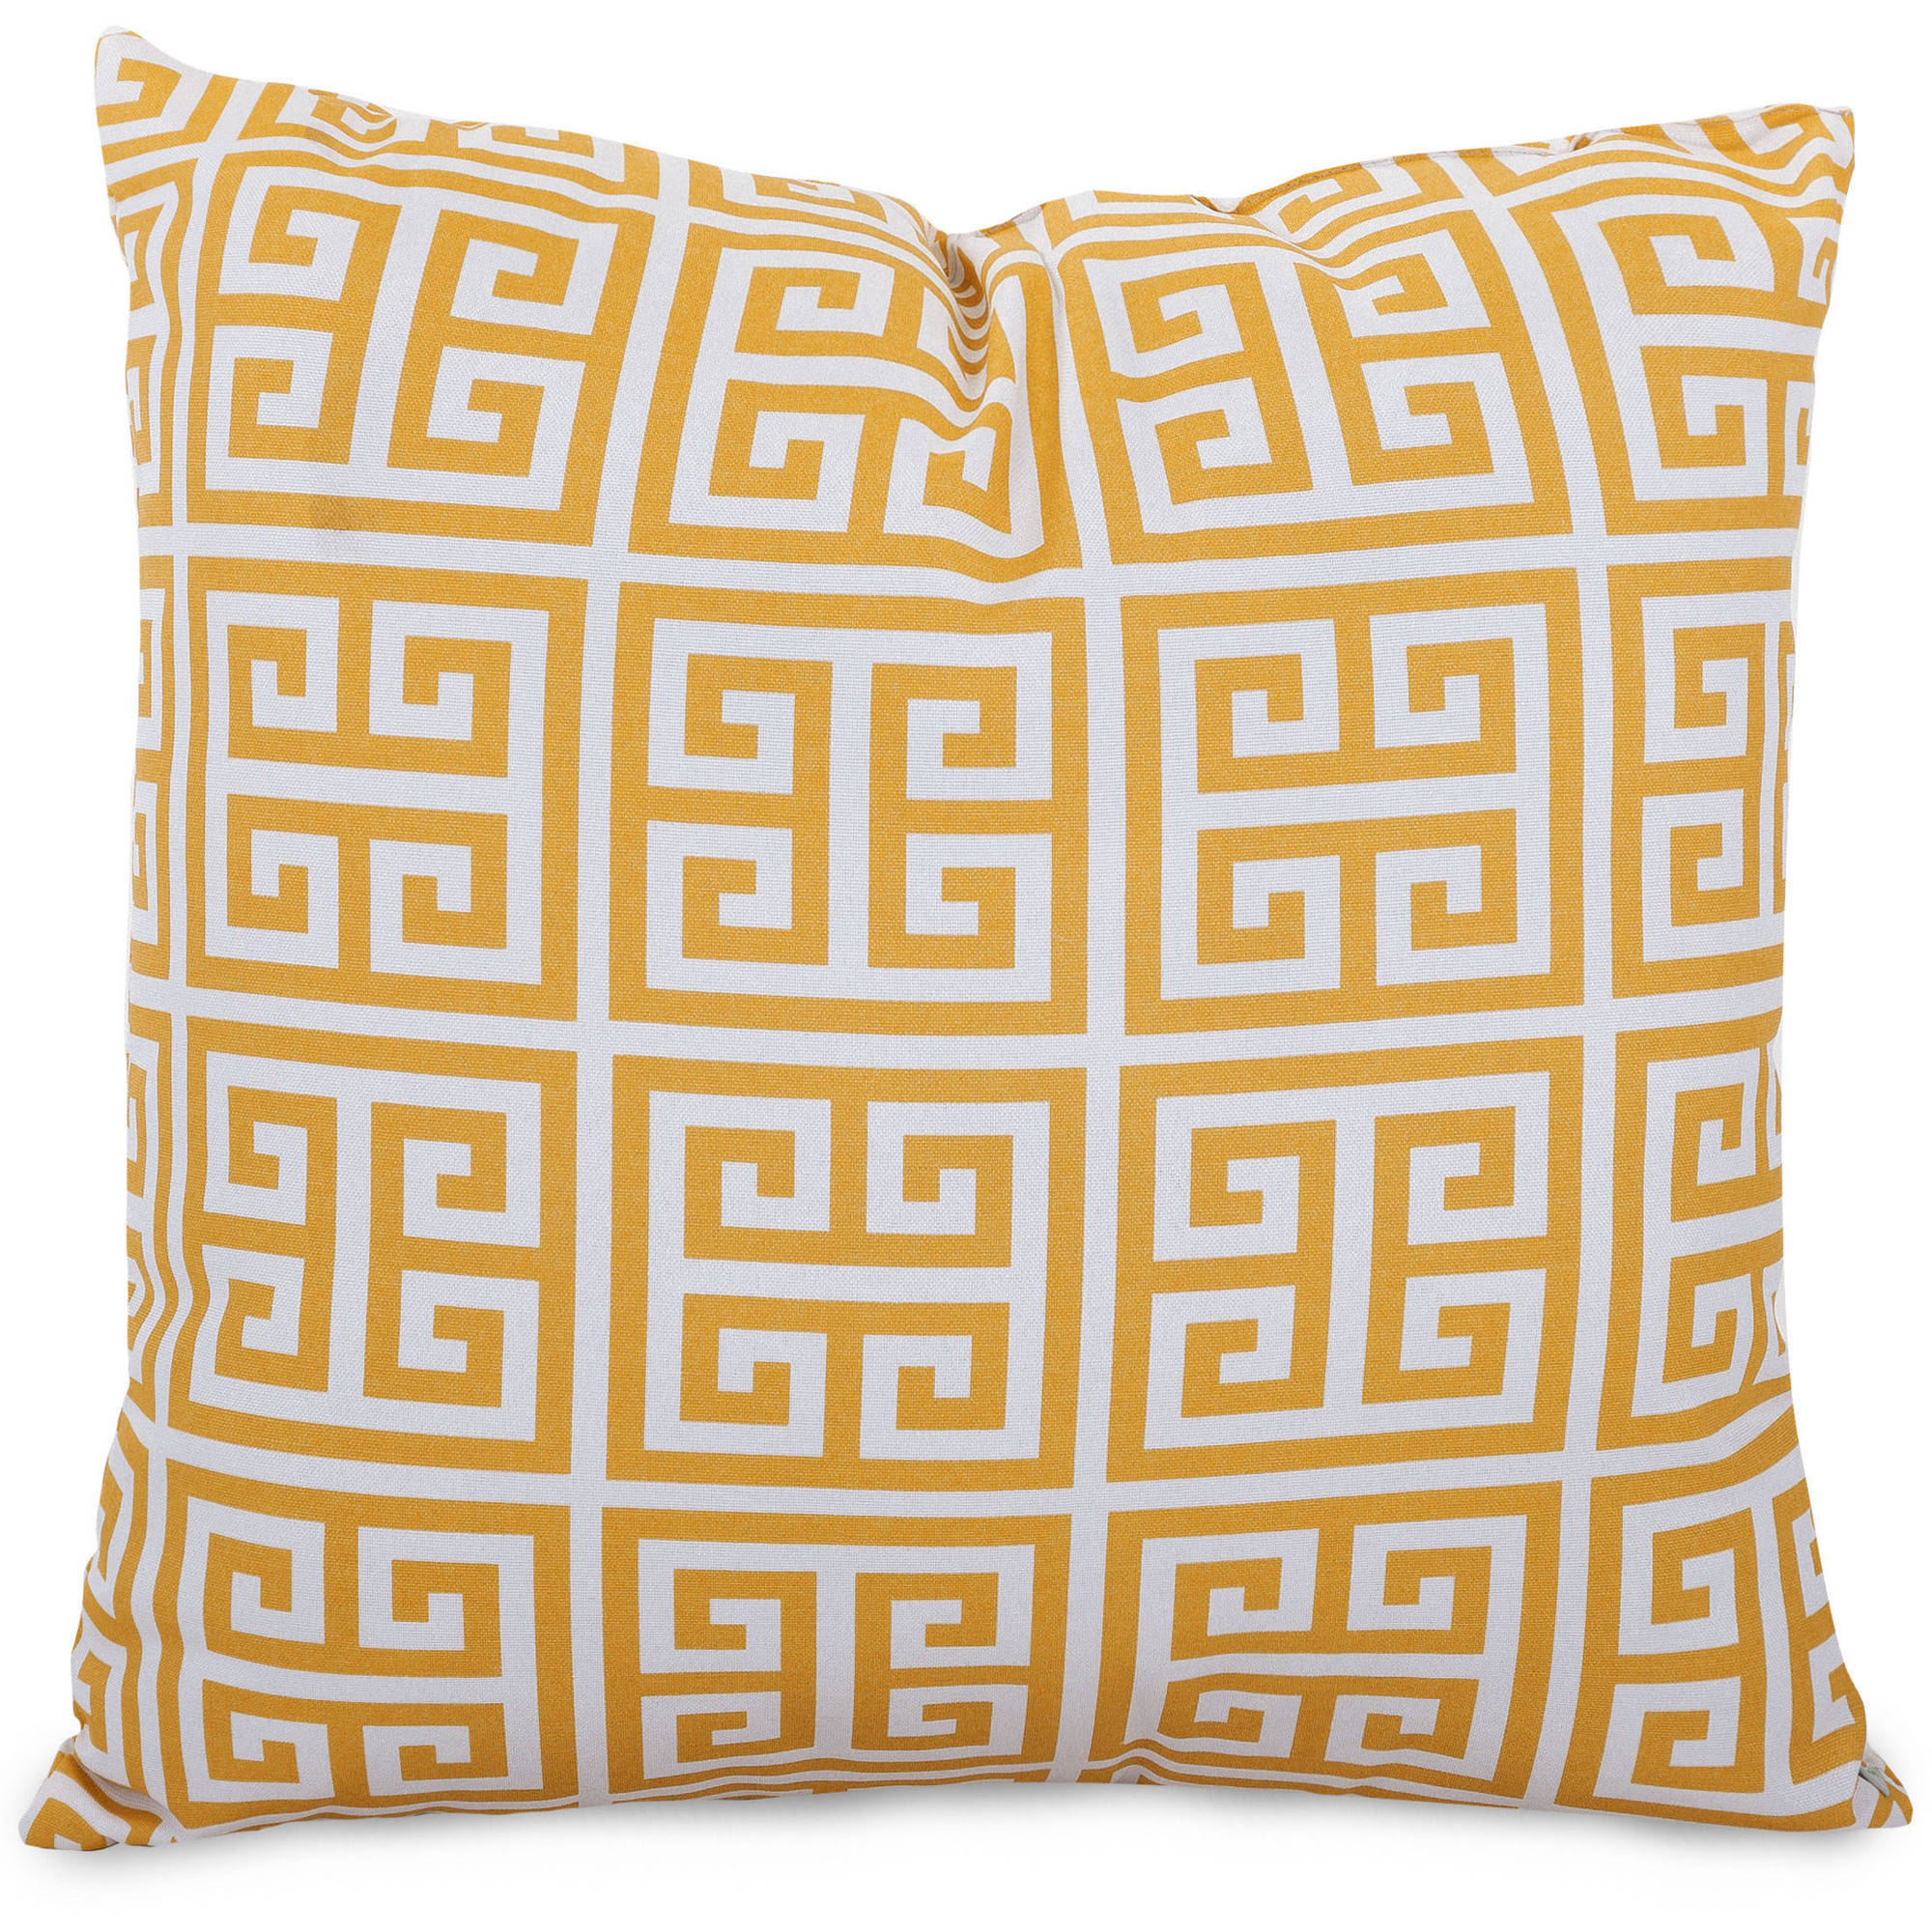 "Majestic Home Goods Towers Large Decorative Pillow, 20"" x 20"", Indoor/Outdoor"